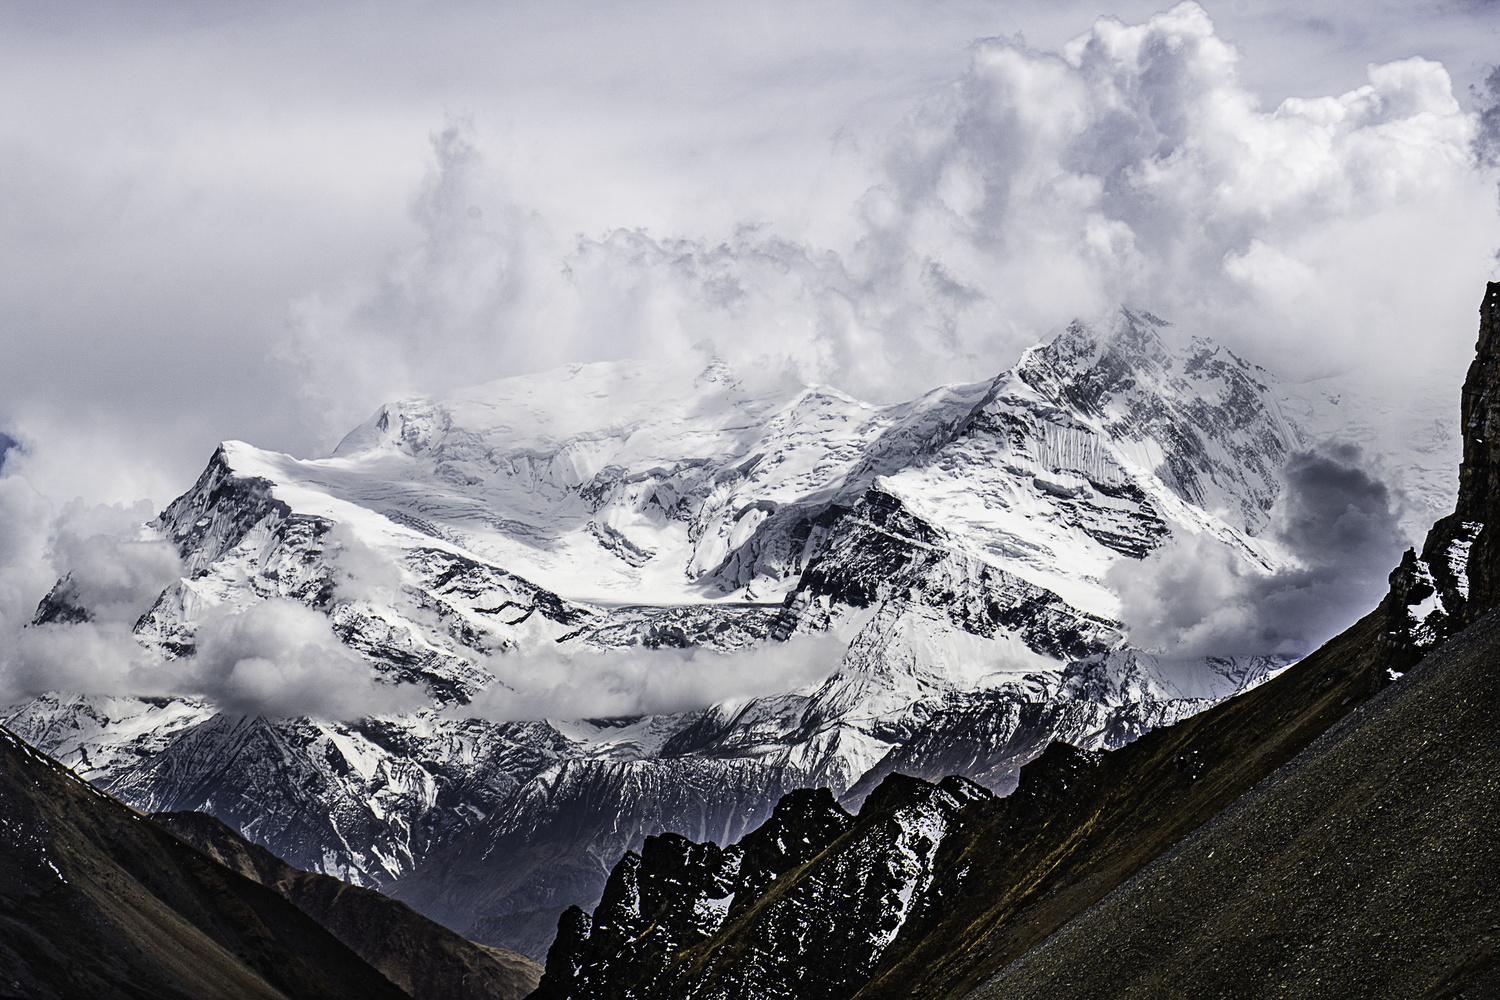 View from High Camp on the Annapurna Circuit by mark allan